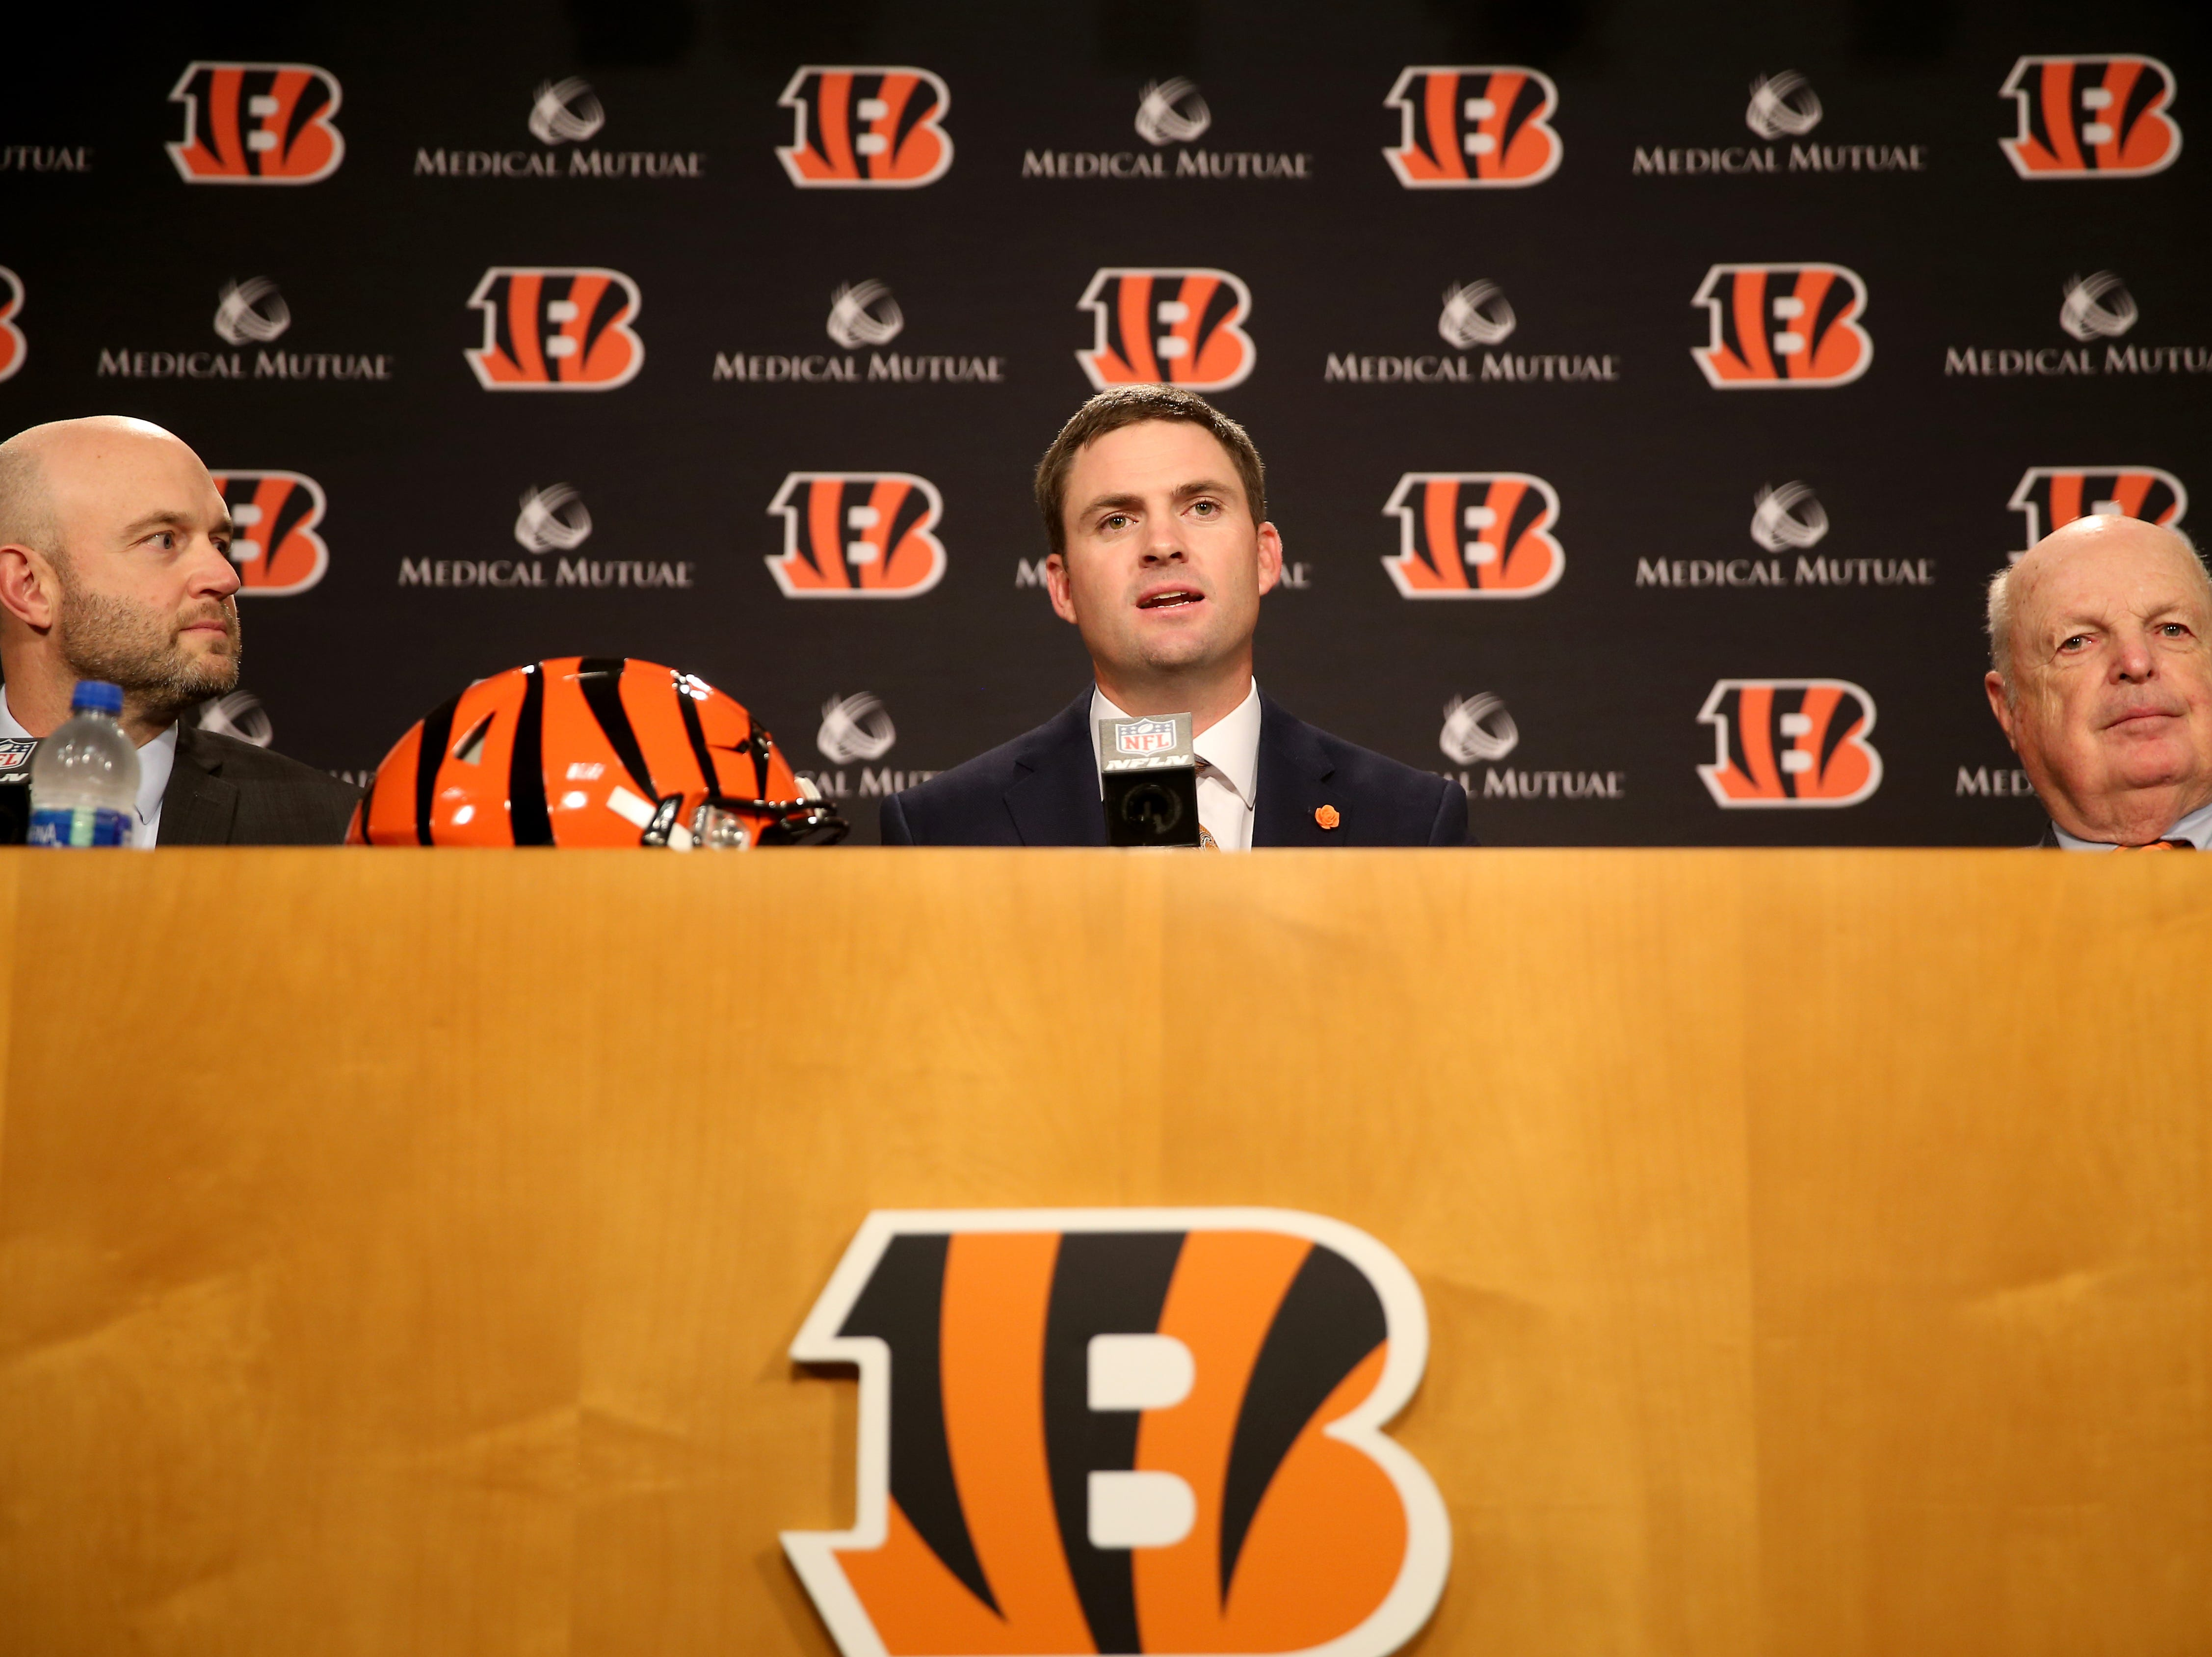 From left: Cincinnati Bengals director of player personnel Duke Tobin, head coach Zac Taylor and team president Mike Brown speak at a press conference, naming Taylor as the10th head coach in Cincinnati Bengals team history, Tuesday, Feb. 5, 2019, at Paul Brown Stadium in Cincinnati.